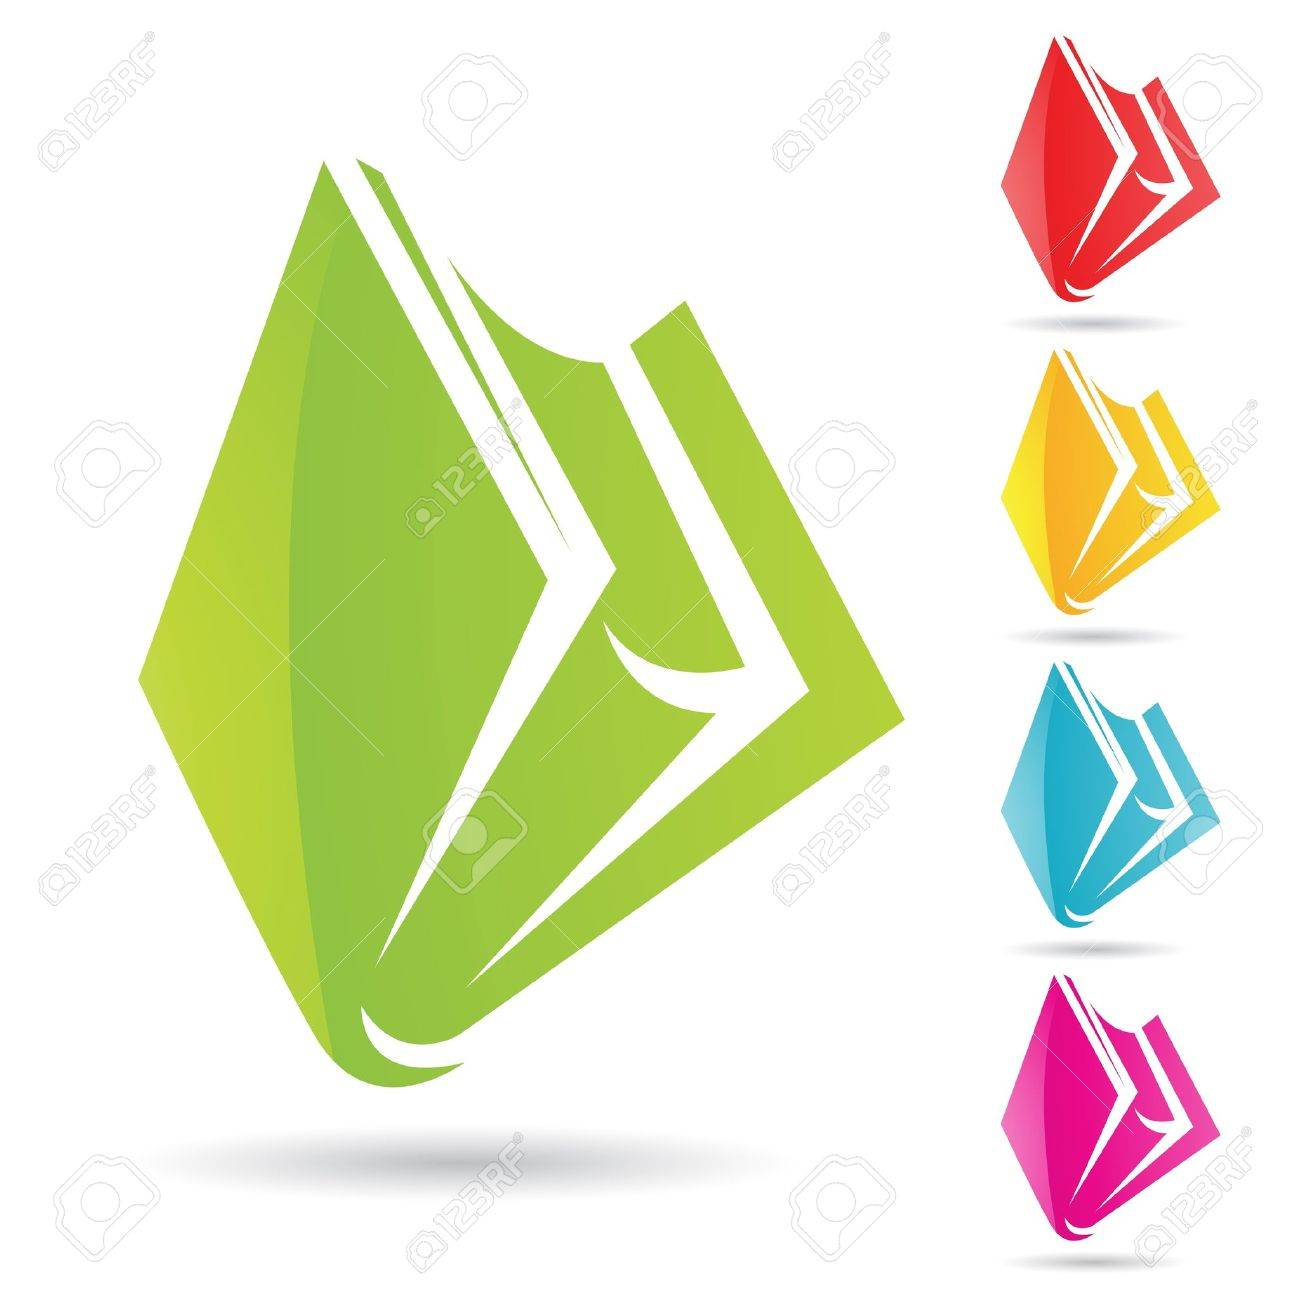 Eps Vector illustration of colorful book icons Stock Vector - 11084290